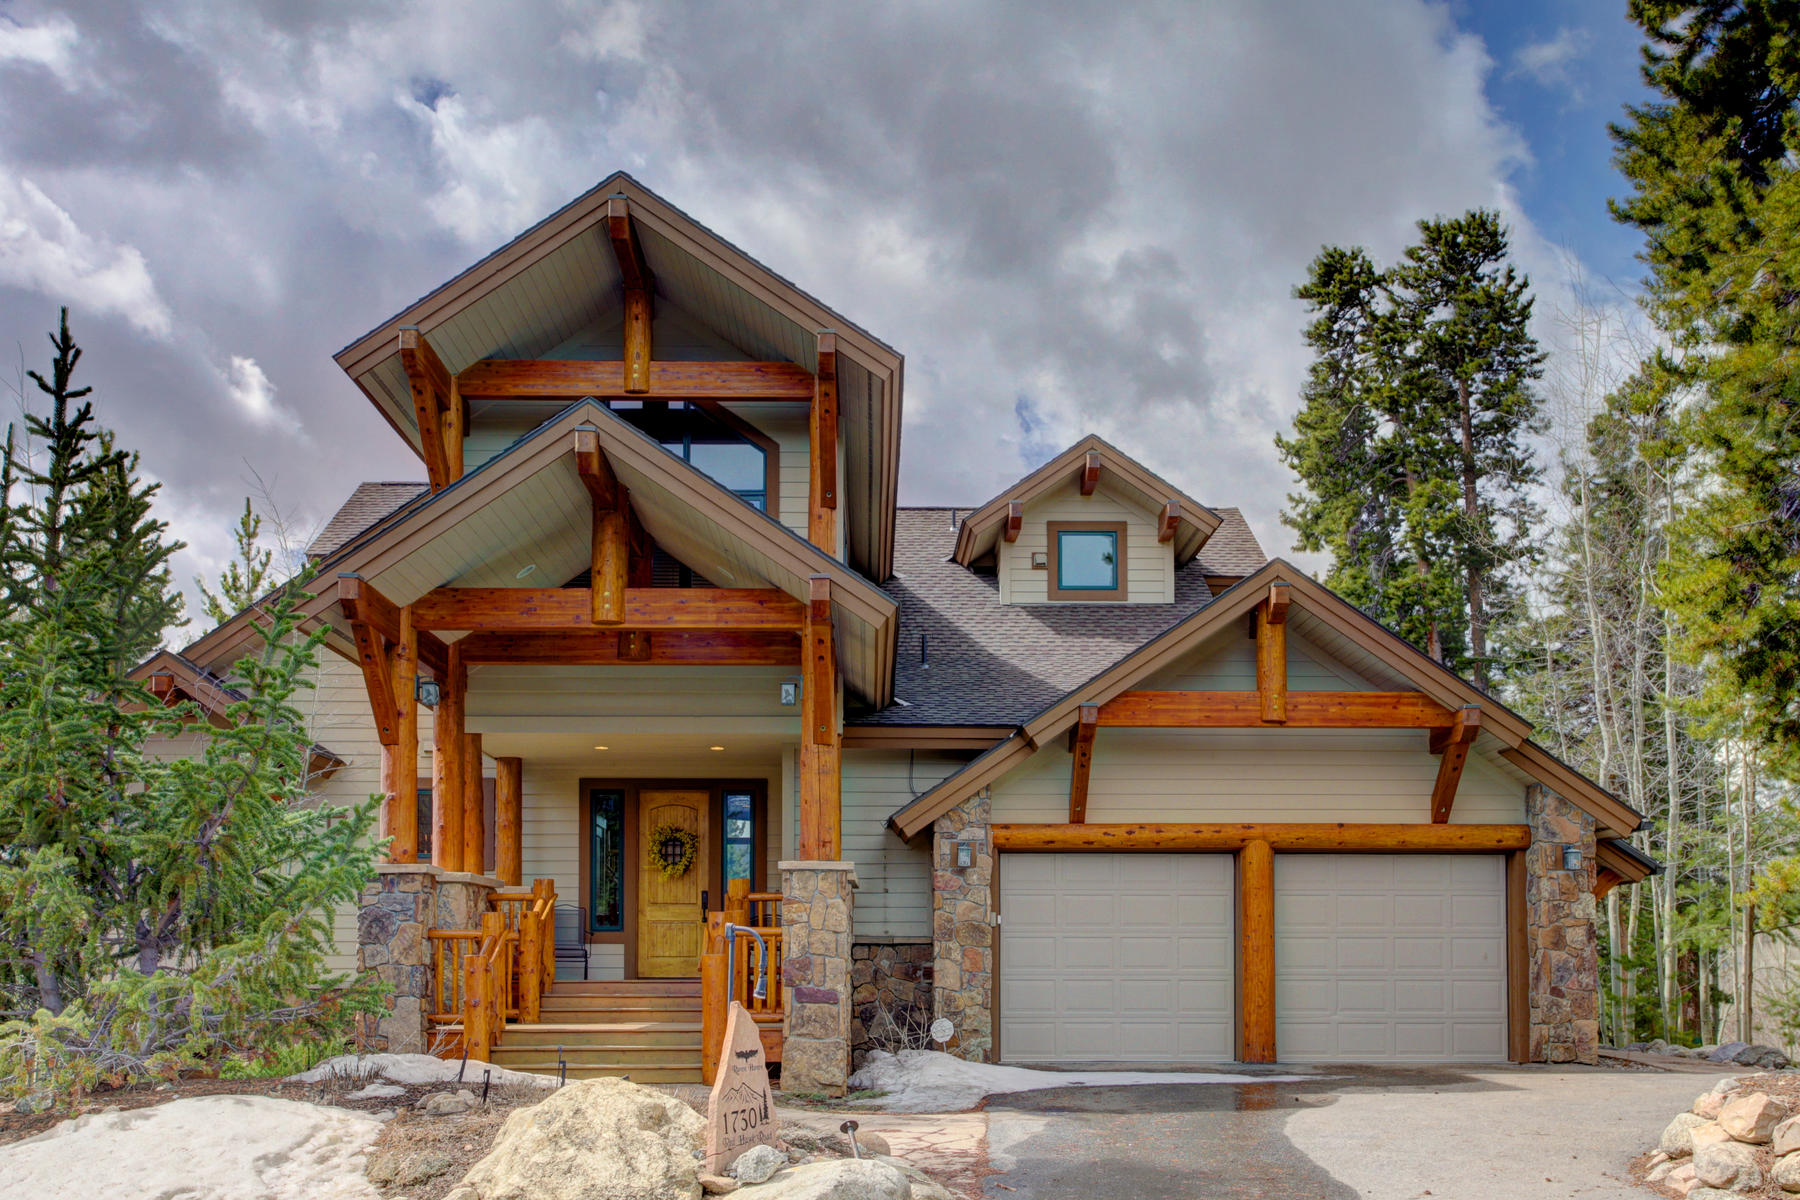 Single Family Home for Active at 1/4 Share Property in Eagles Nest 1730 Red Hawk Road, #0 Silverthorne, Colorado 80498 United States